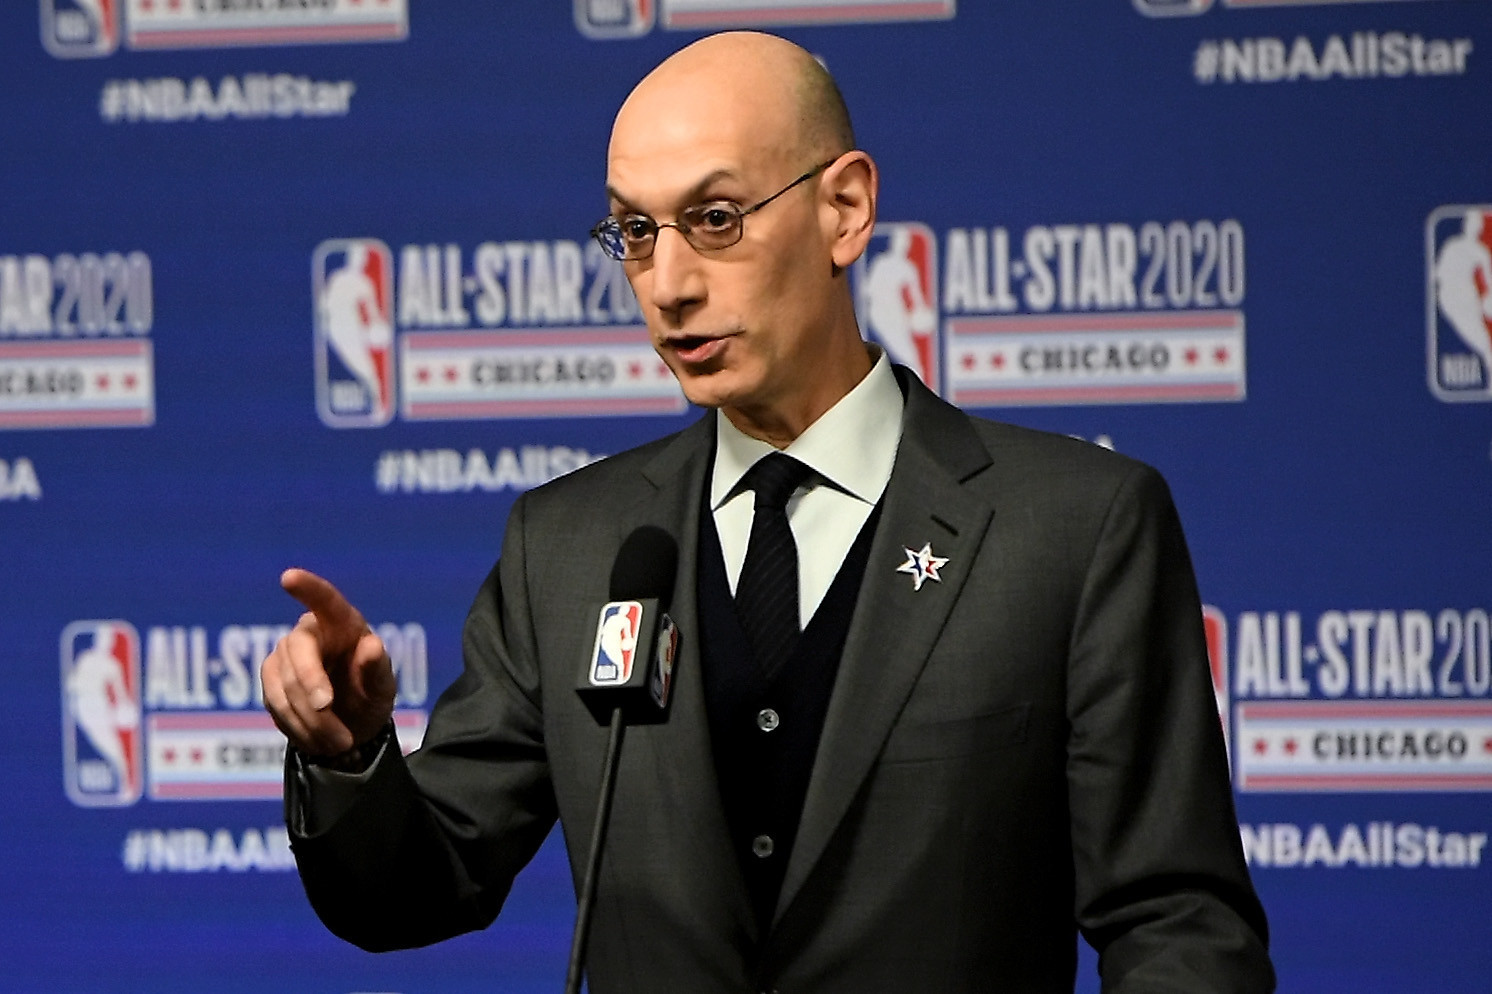 NBA Commissioner Adam Silver has defended holding the All-Star game in Atlanta during the pandemic ©Getty Images